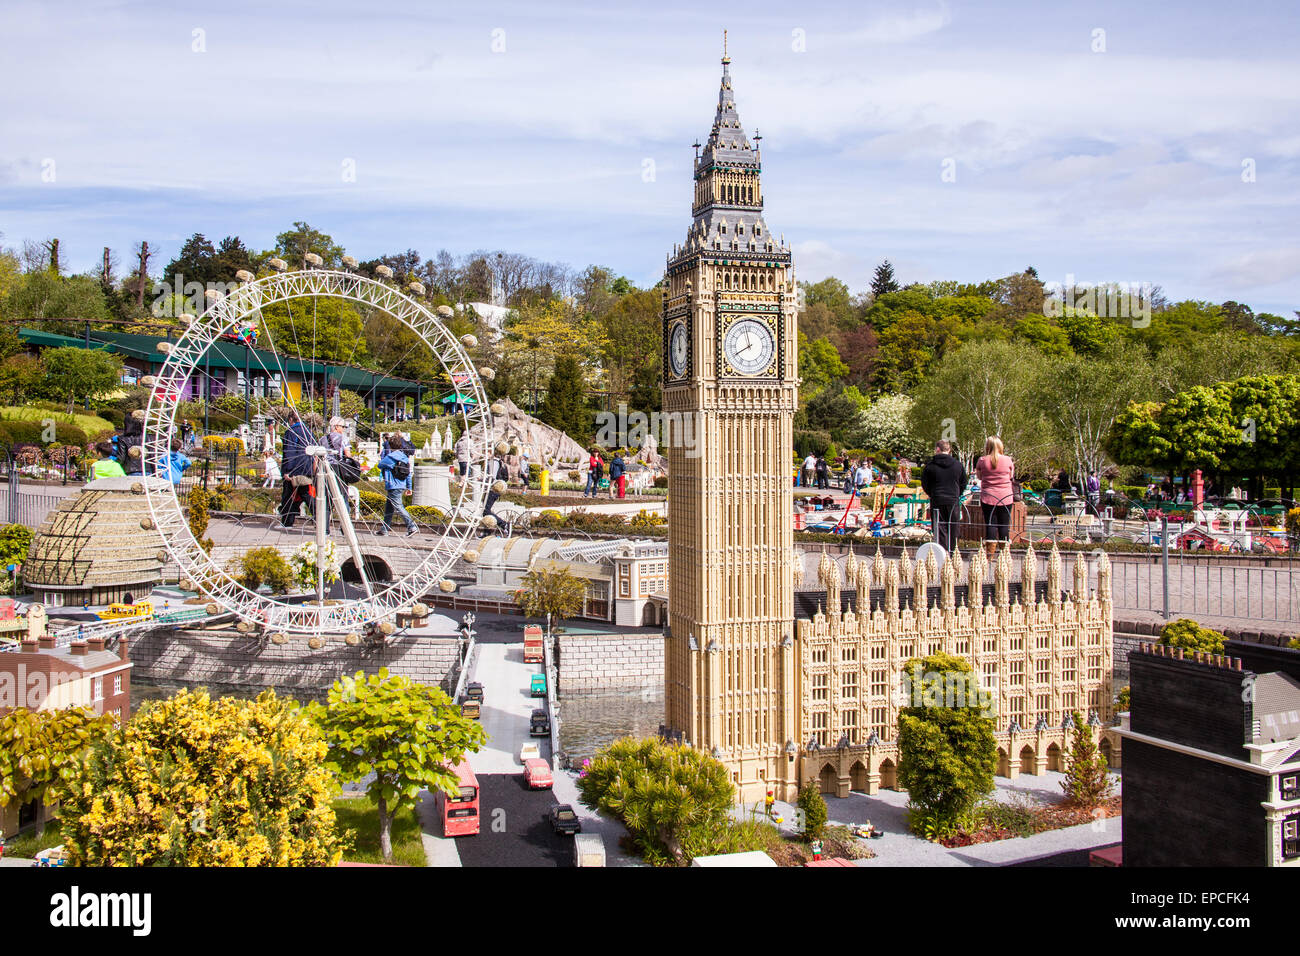 Big Ben and the houses of parliament at Legoland Theme Park, Windsor, Berkshire, United Kingdom. Stock Photo